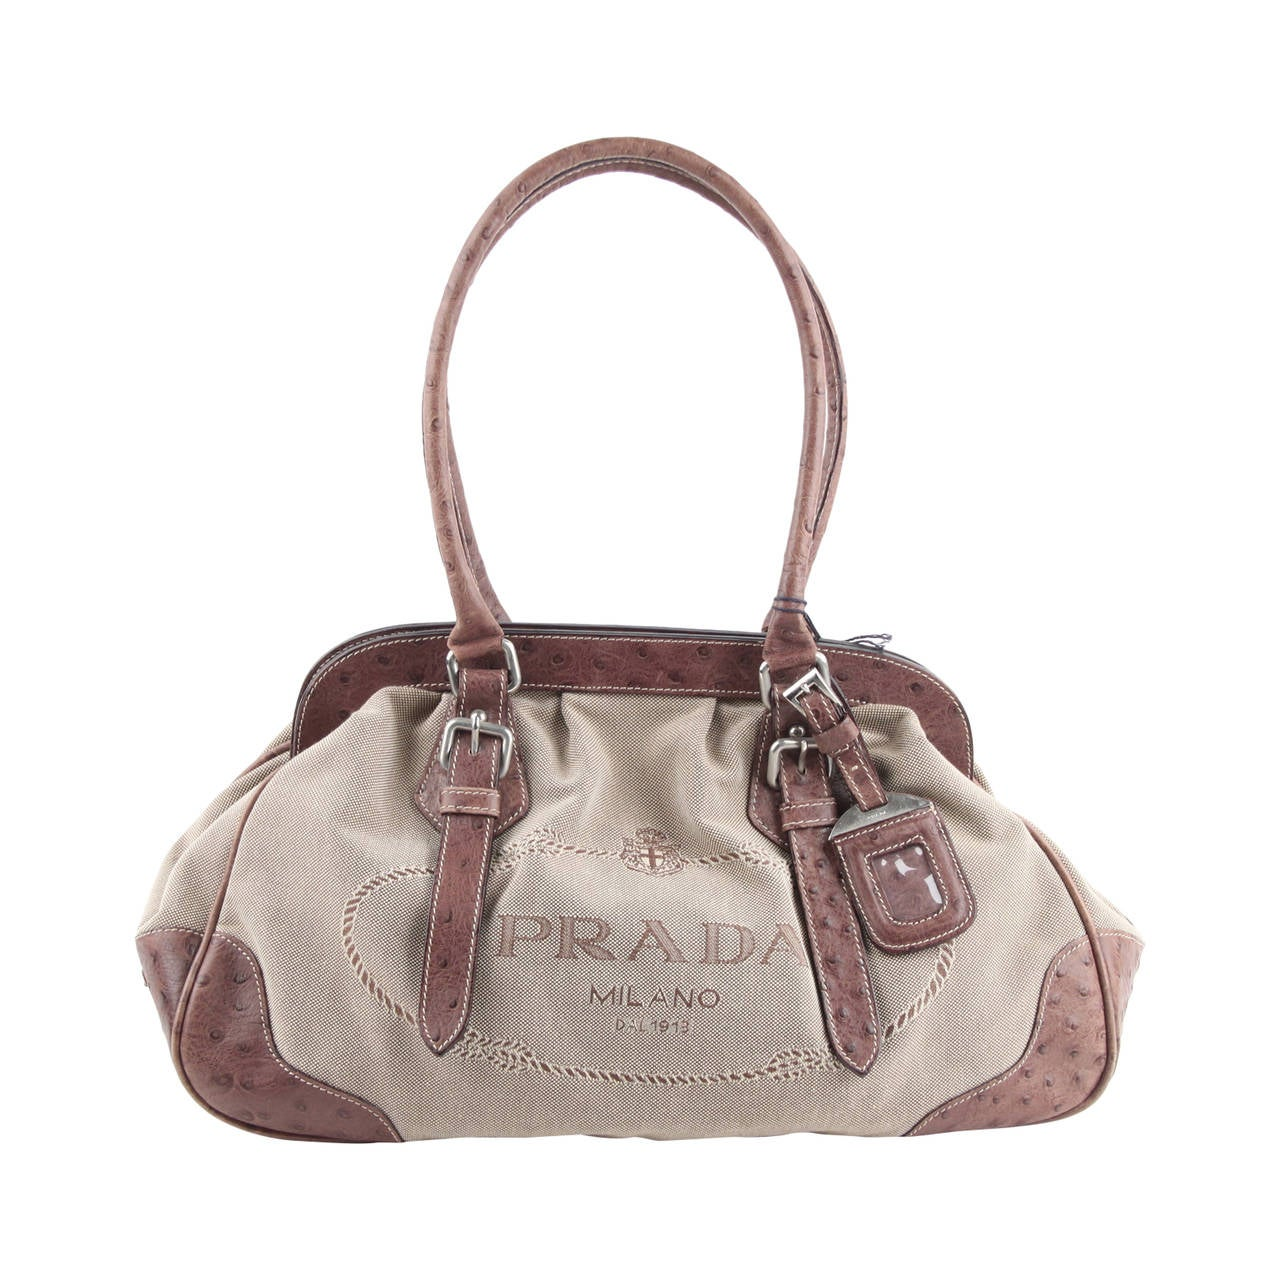 black high top pradas - PRADA Beige JACQUARD LOGO Fabric HANDBAG Doctor Bag w/ OSTRICH ...